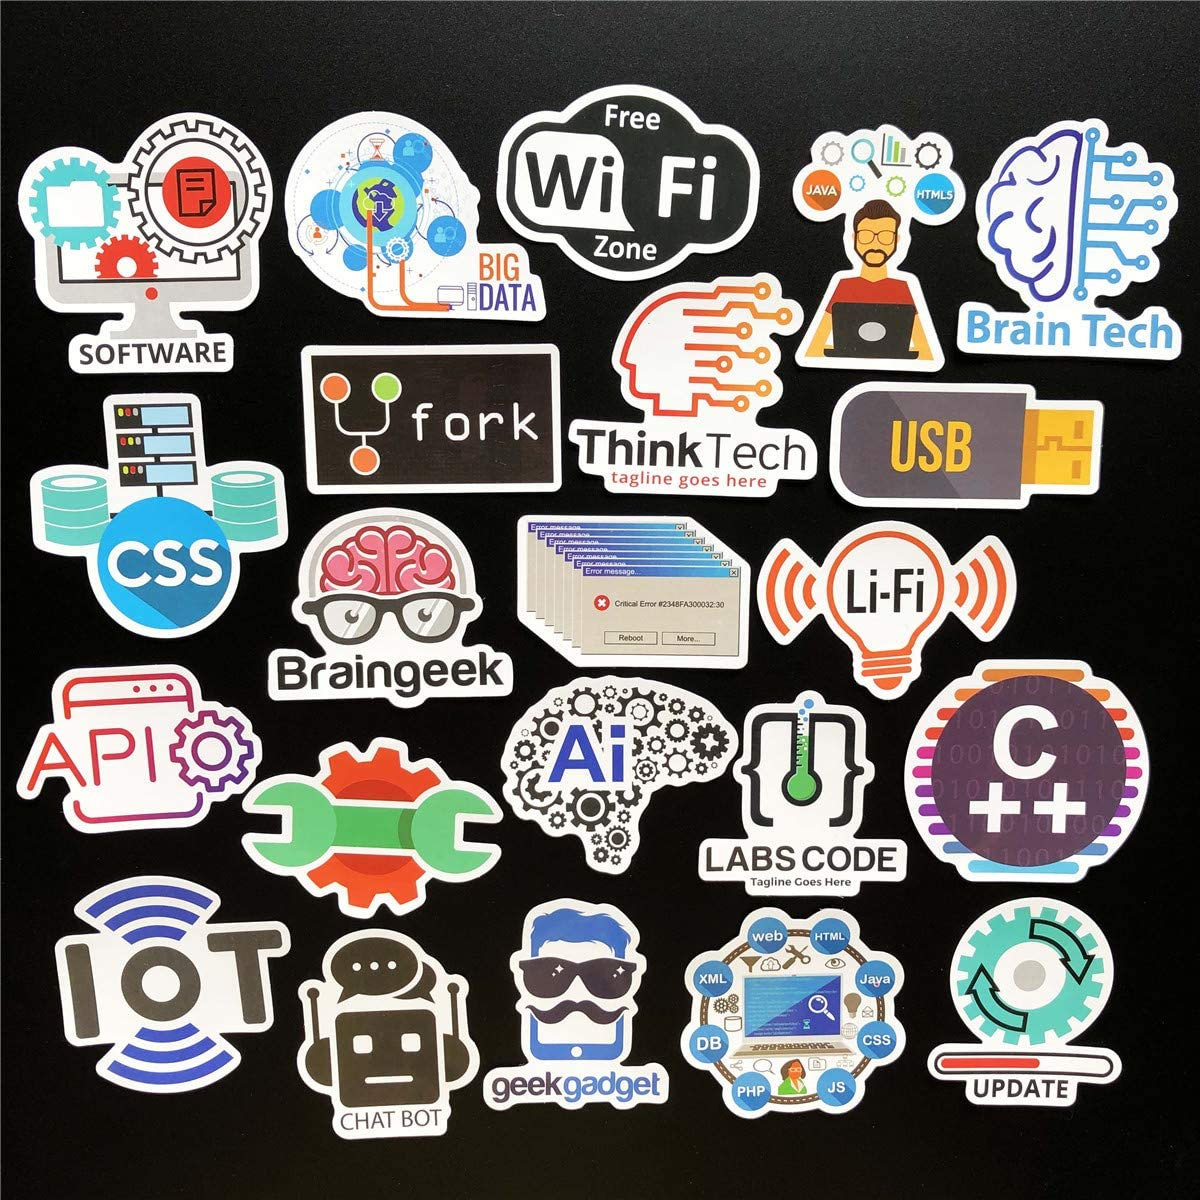 Engineers Programmers COOLCOOLDE Programming Stickers 50Pcs Variety Vinyl Car Sticker Front-end dev,Back-end Languages Stickers for Software Developers Hackers Geeks and Coders